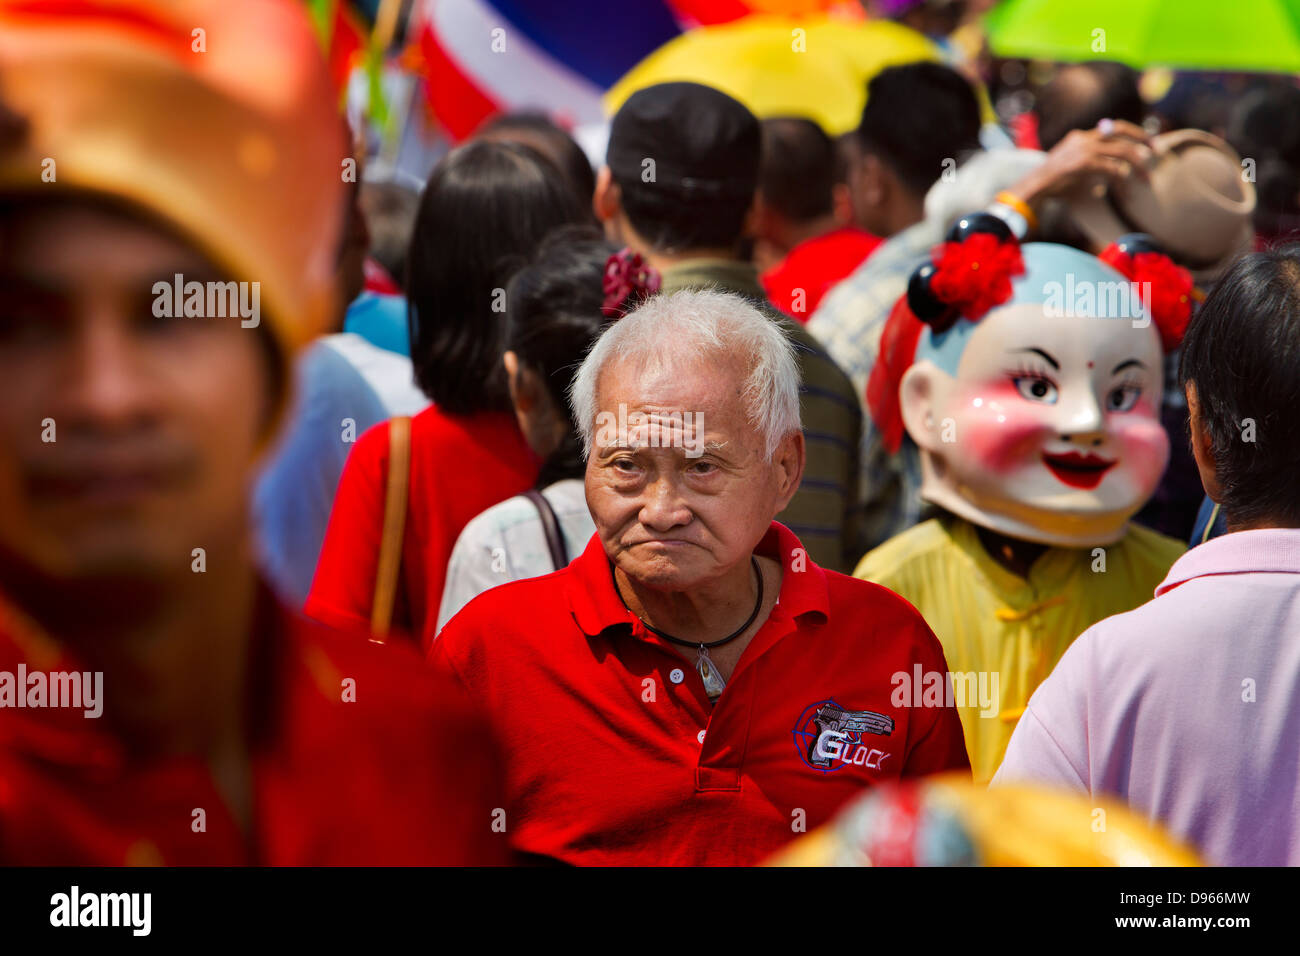 Man with a gun on his shirt during the Chinese New Year Celebrations in Bangkok's Chinatown - Stock Image